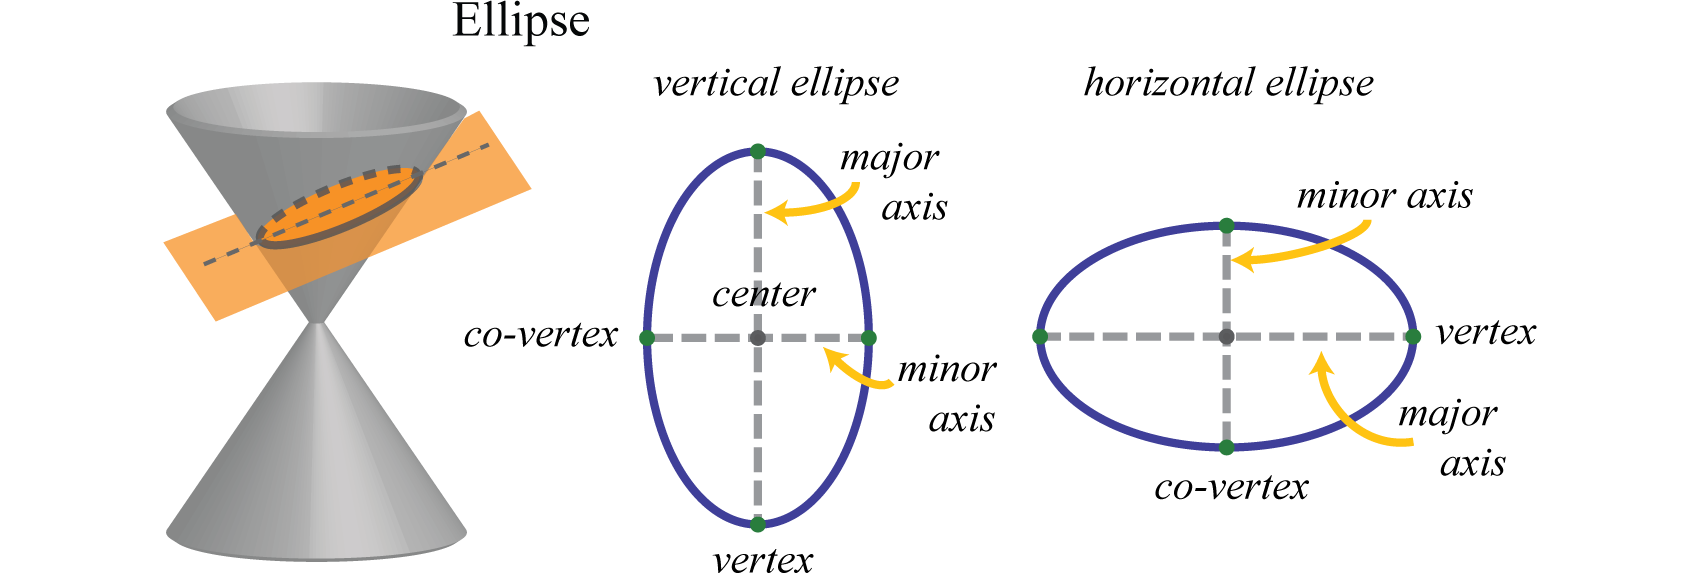 If The Major Axis Of An Ellipse Is Parallel To The Xaxis In A Rectangular  Coordinate Plane, We Say That The Ellipse Is Horizontal